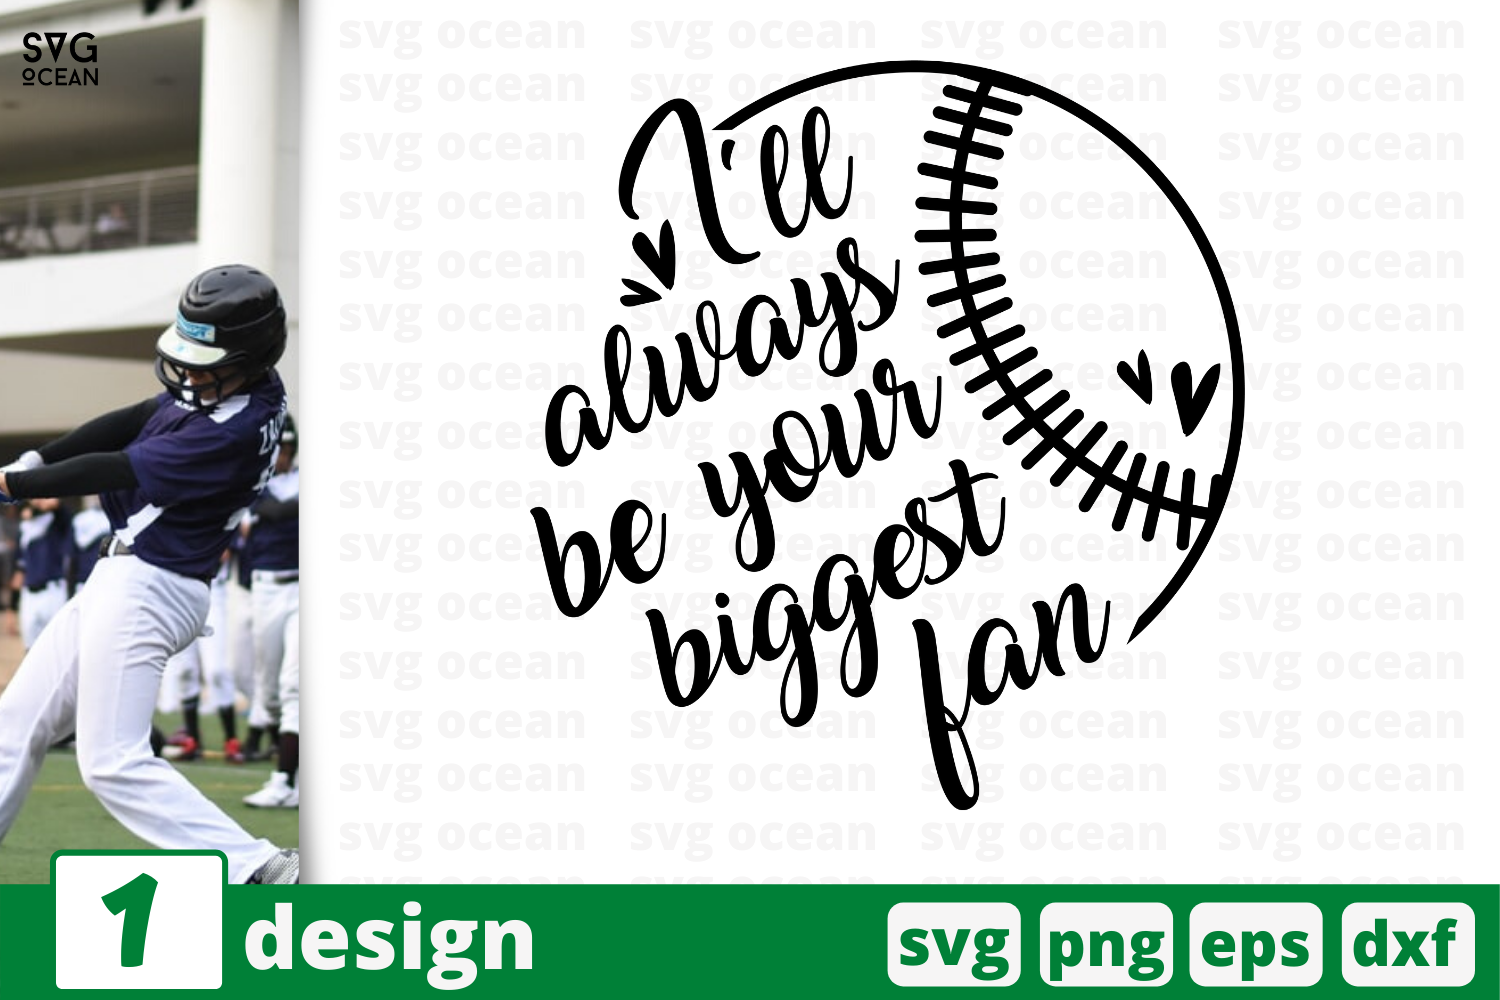 Download Free Your Biggest Fan Graphic By Svgocean Creative Fabrica for Cricut Explore, Silhouette and other cutting machines.